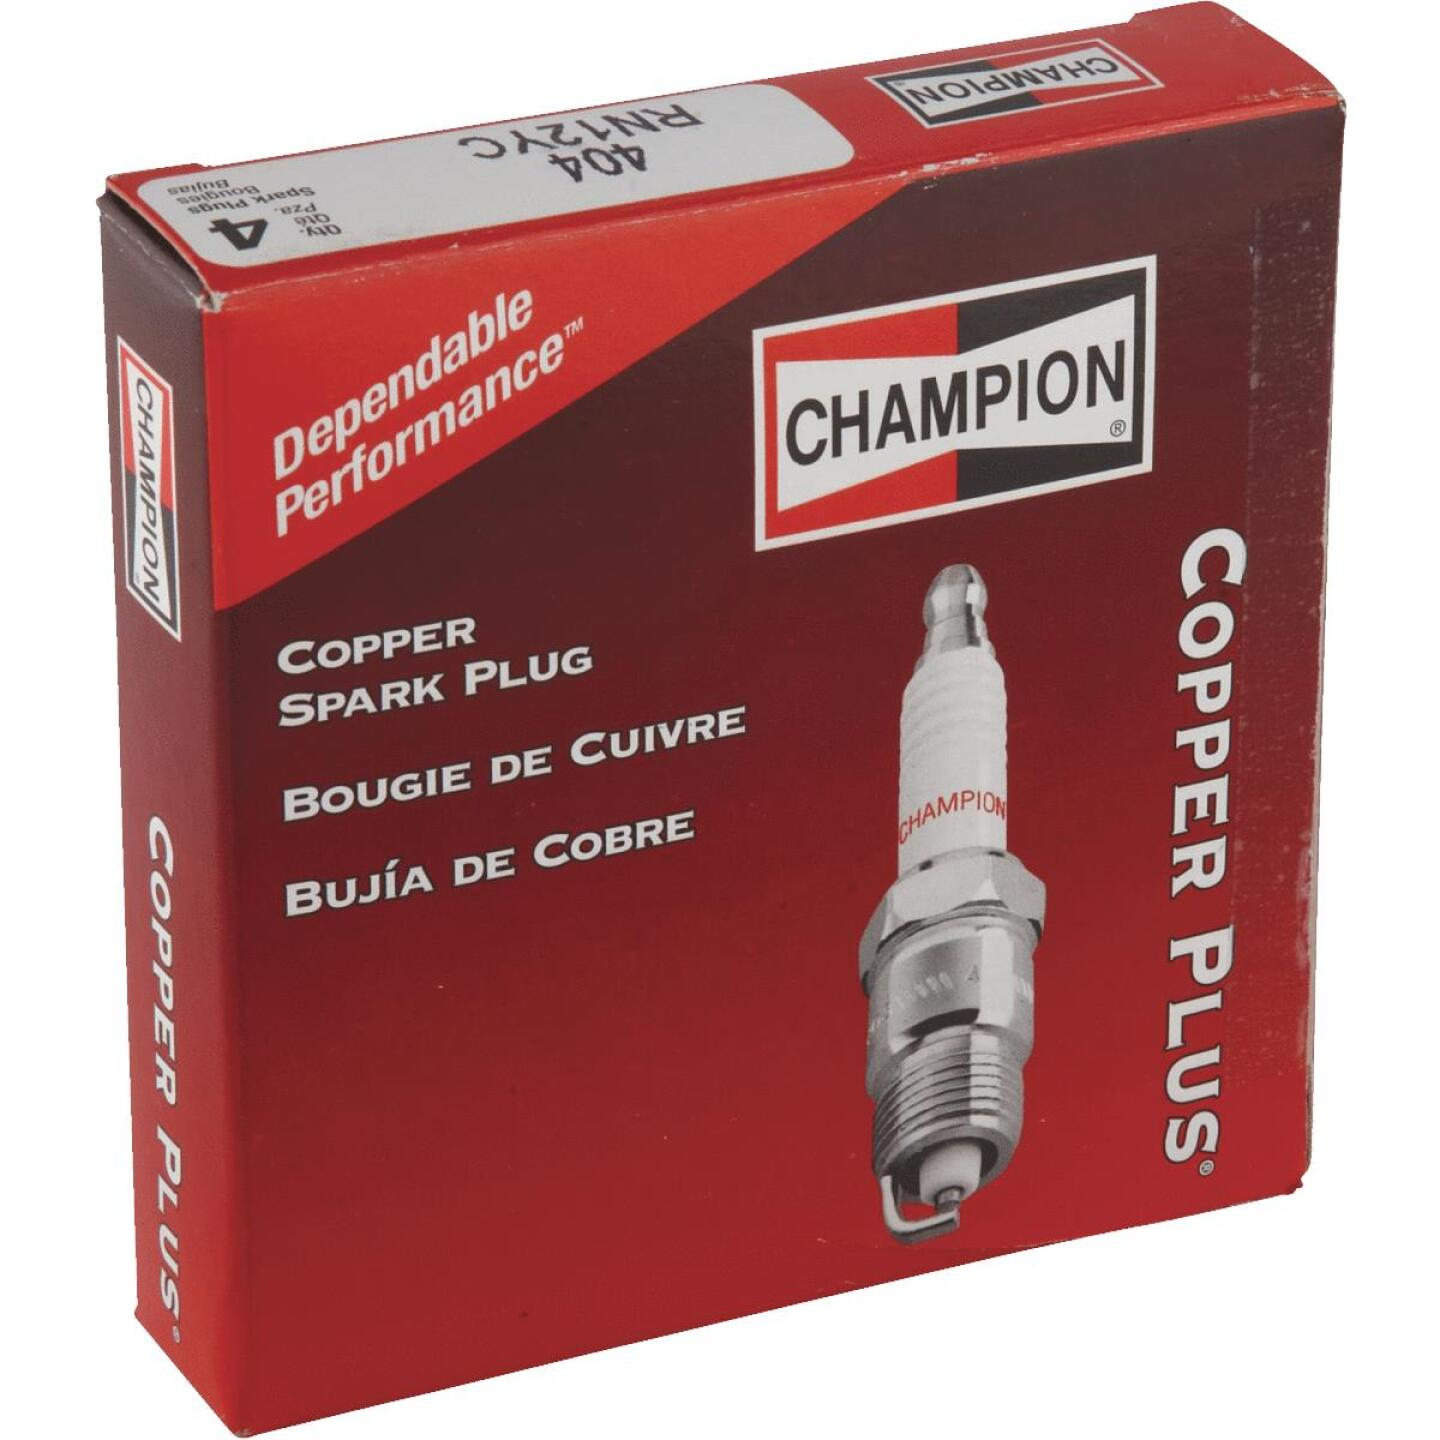 Champion RN12YC Copper Plus Automotive Spark Plug Image 2